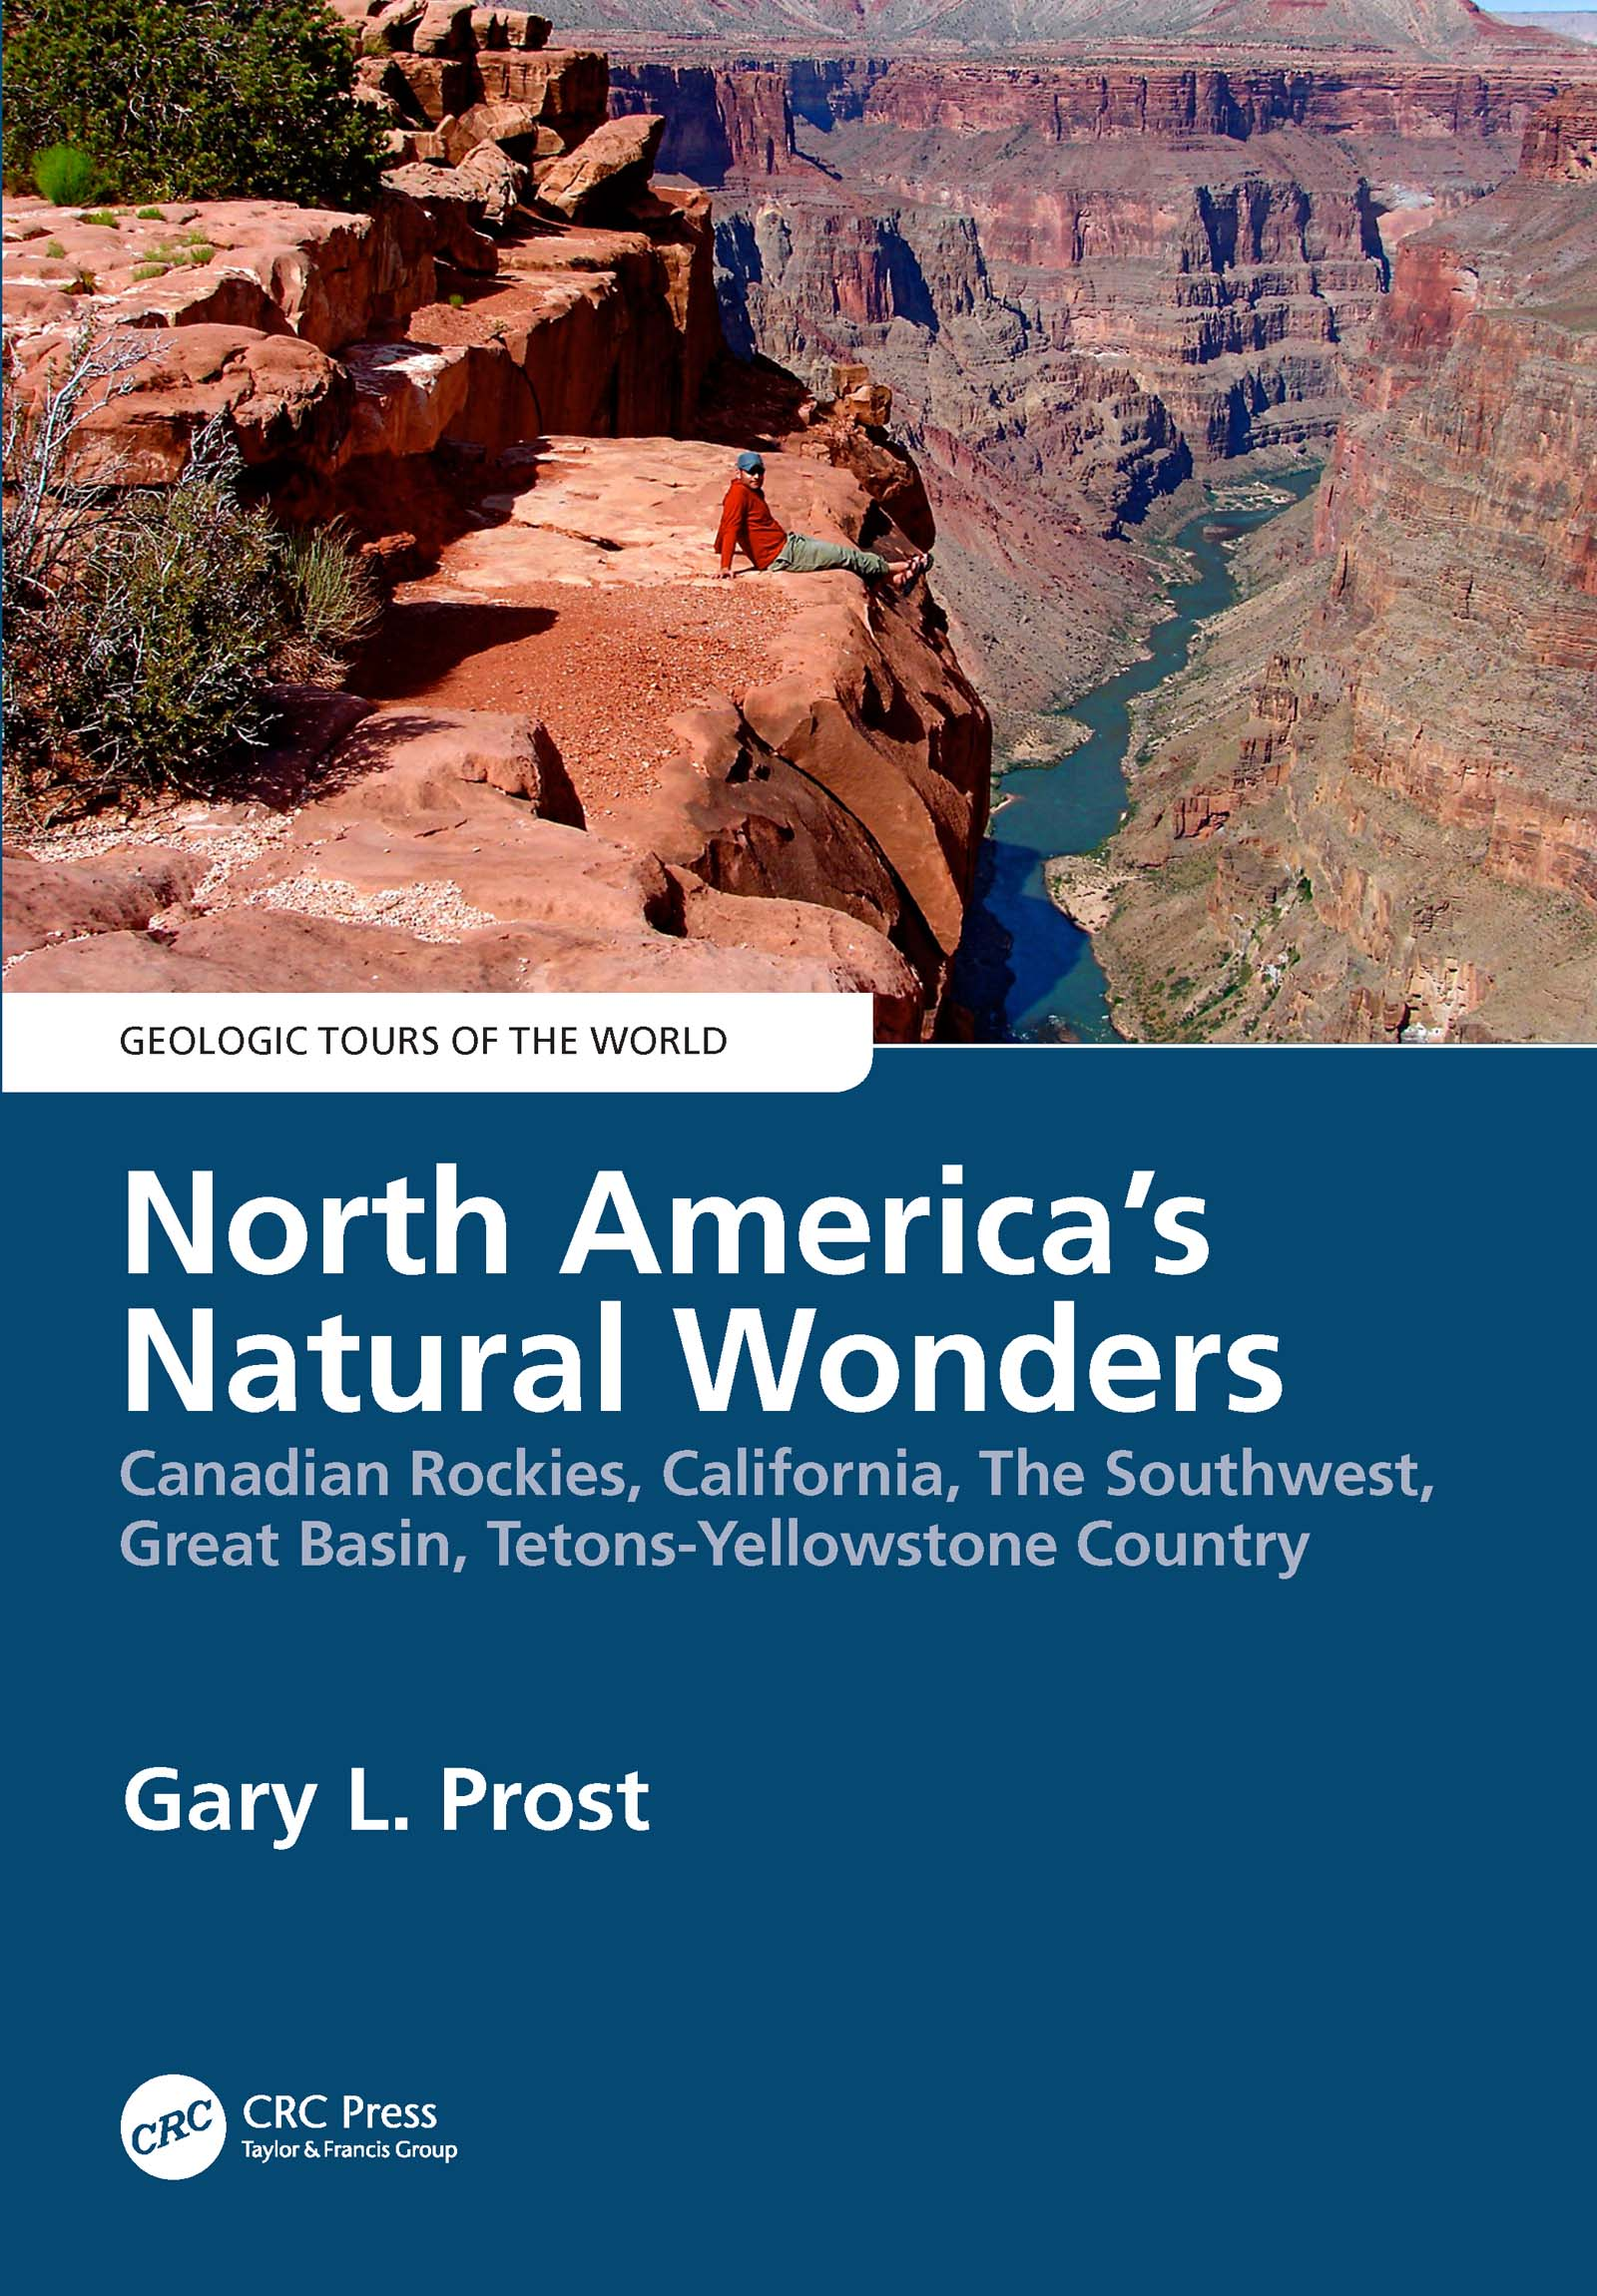 North America's Natural Wonders: Canadian Rockies, California, The Southwest, Great Basin, Tetons-Yellowstone Country book cover